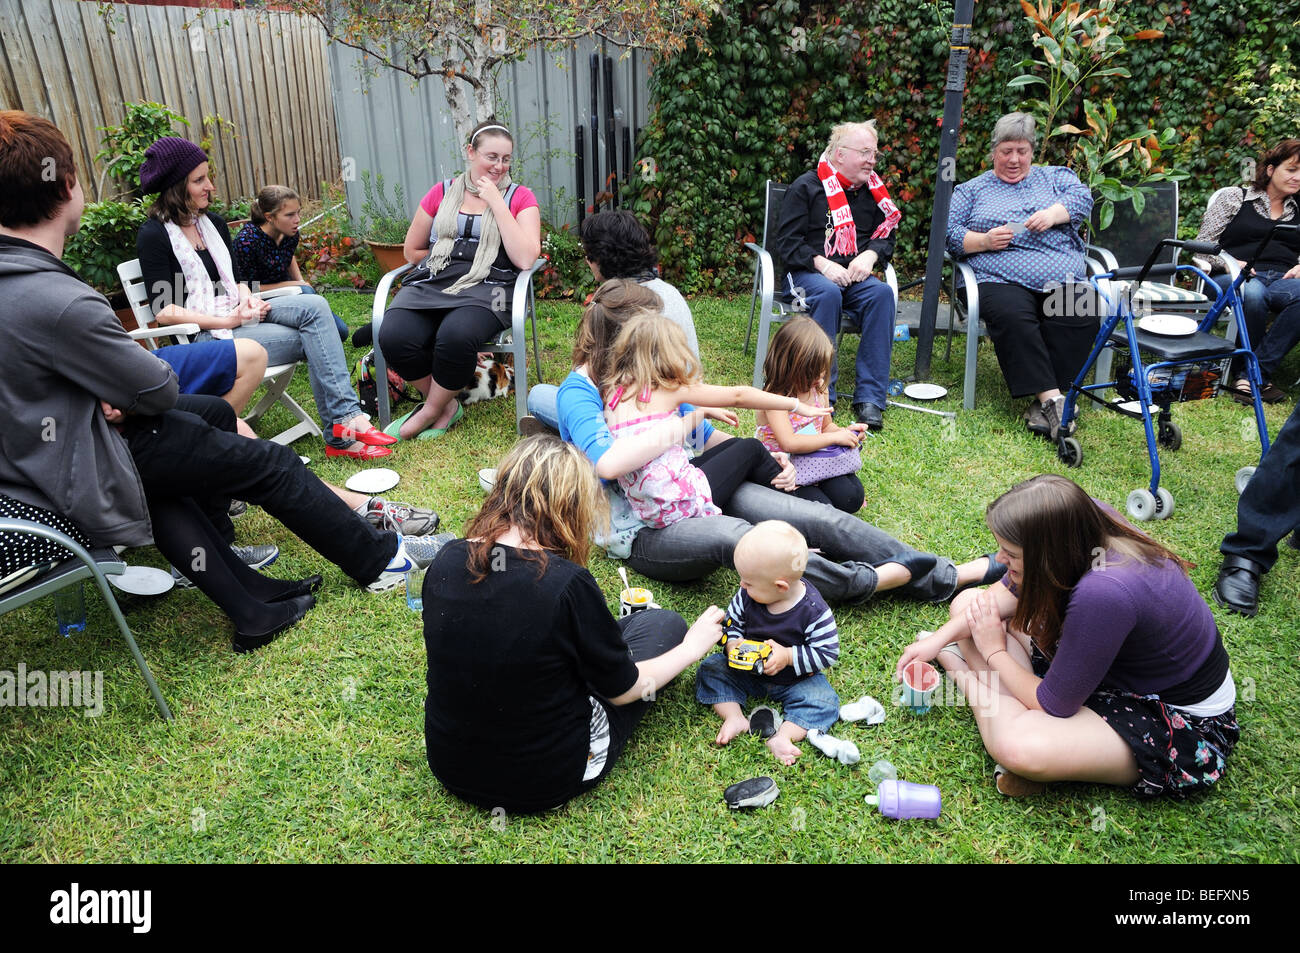 Australians enjoying Easter Sunday with a lunch time party of Hot Cross Buns and drinks in a private home and garden - Stock Image